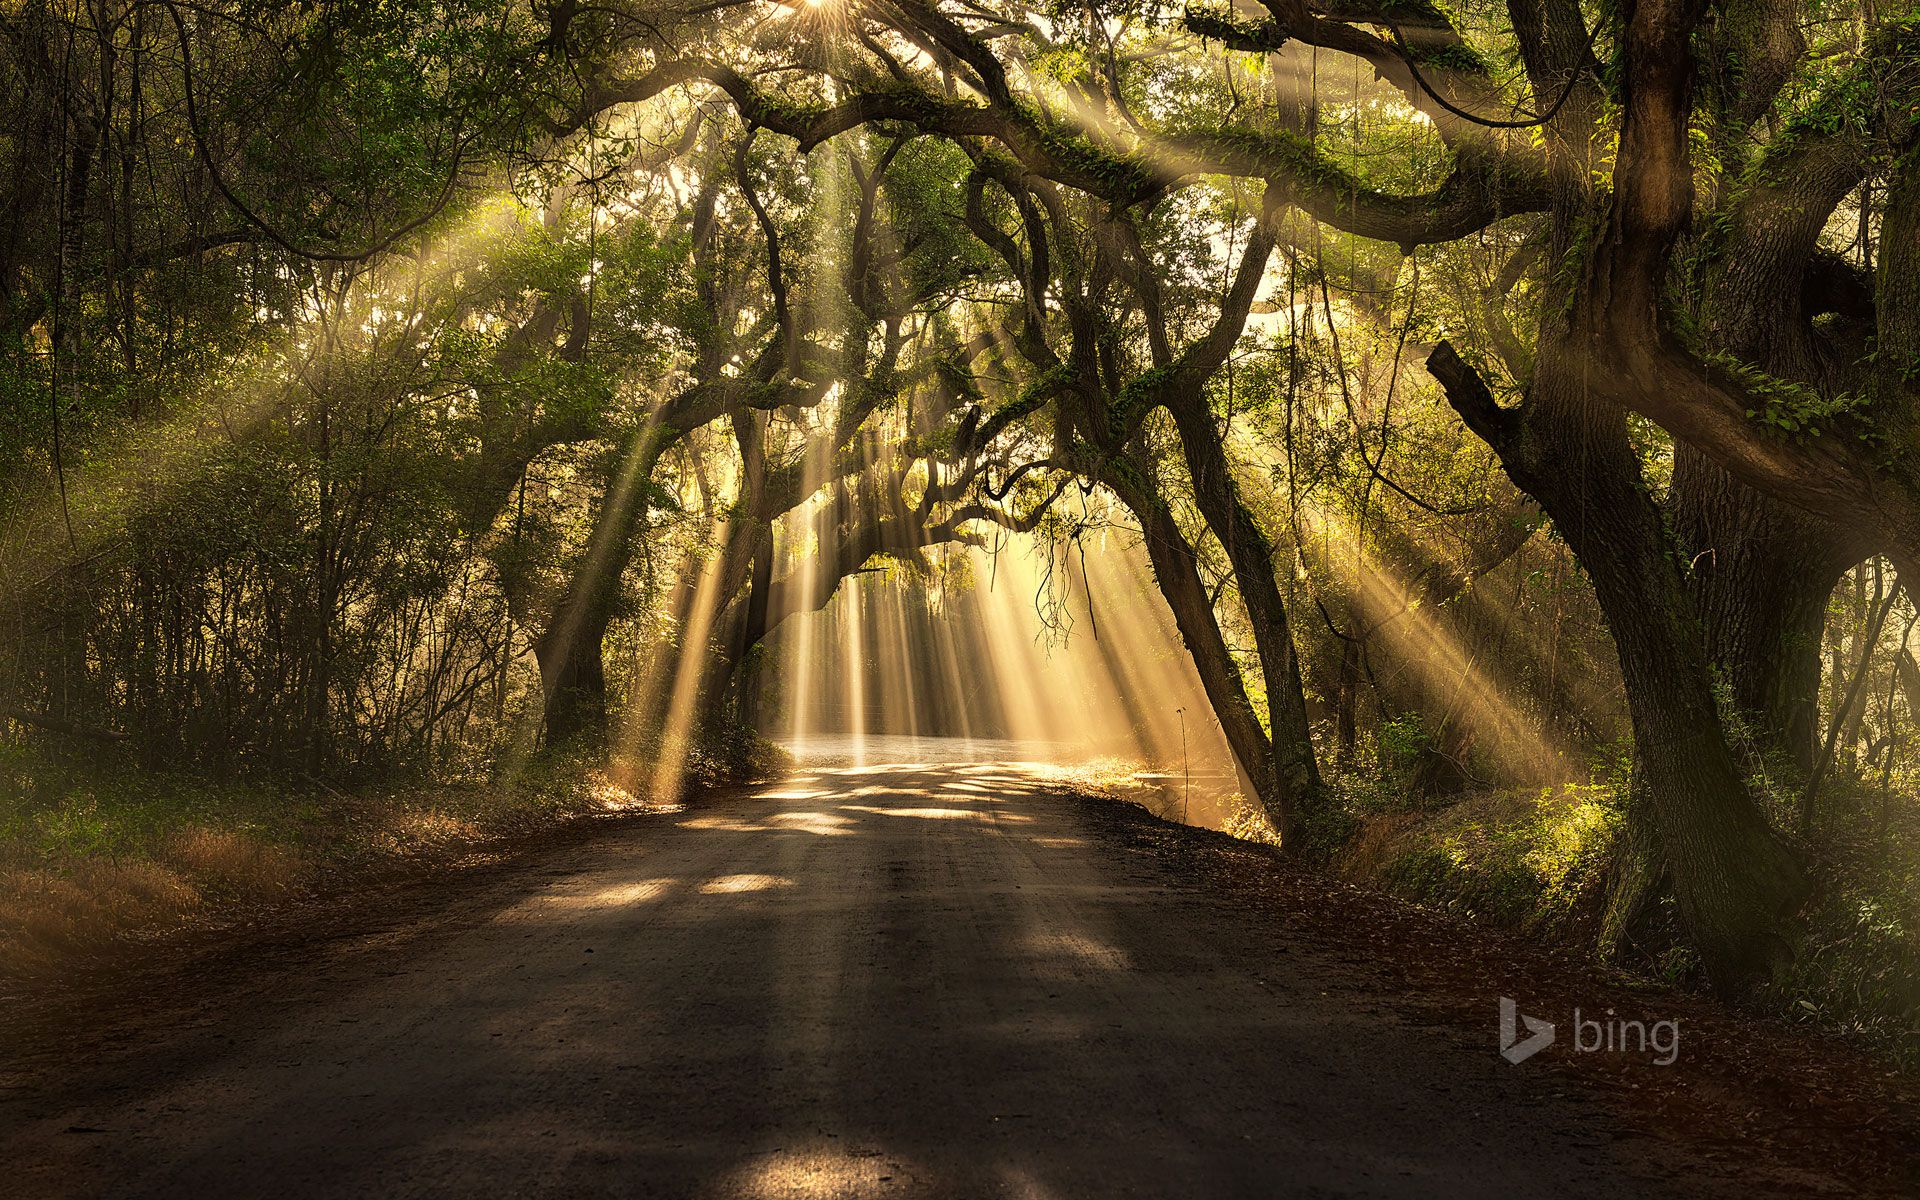 Light and peace, Botany Bay Road, Edisto Island, South Carolina - by  Michael Woloszynowicz